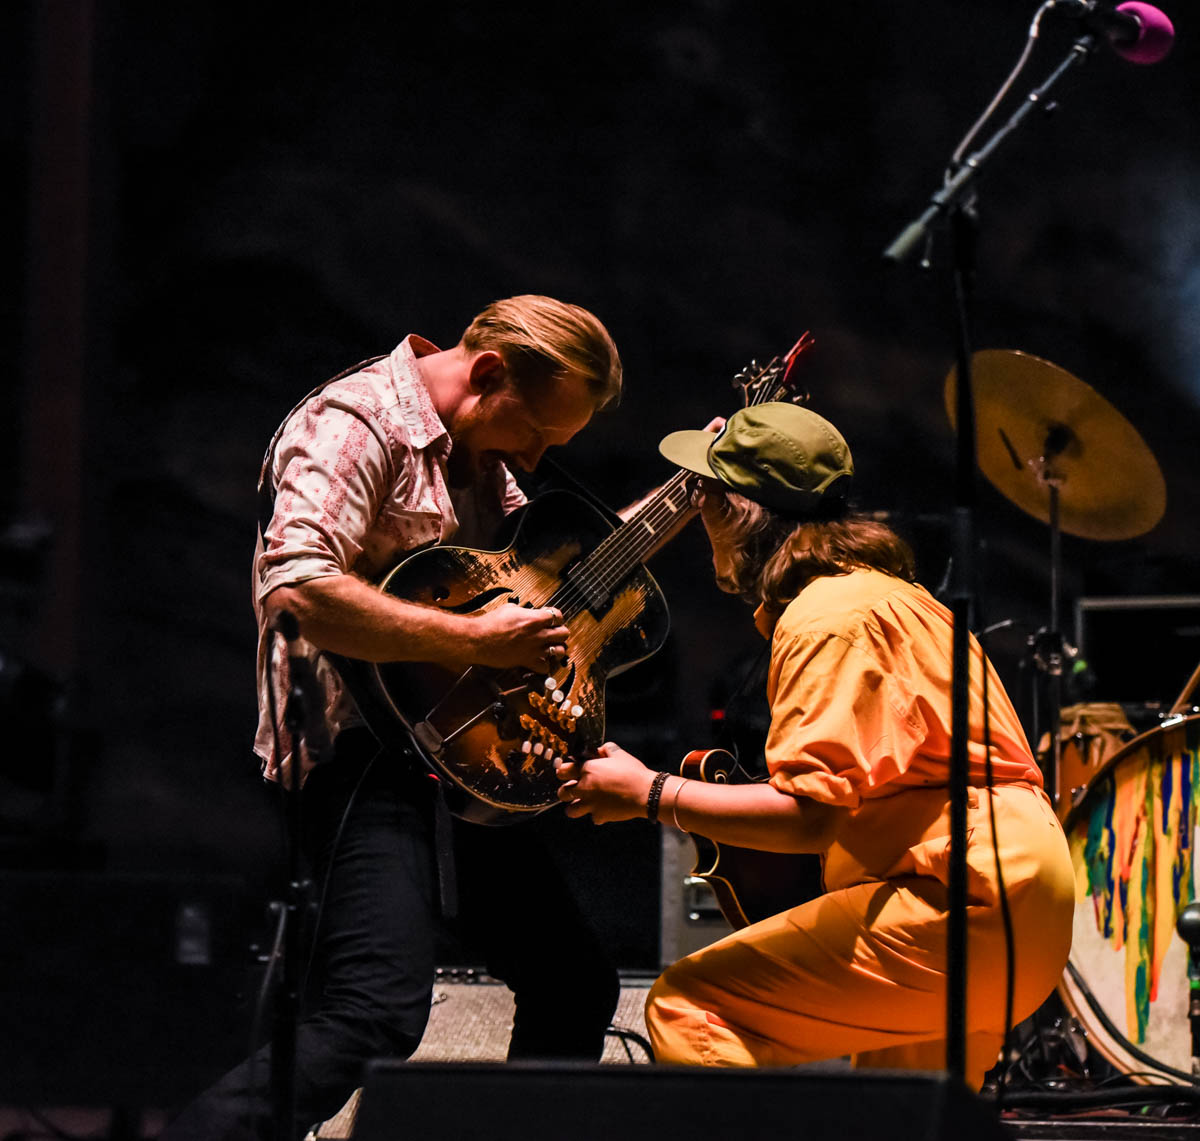 Fruition | Red Rocks Amphitheatre | Morrison, CO. | 09/05/2019 | Photos: ©Pix Meyers 2019